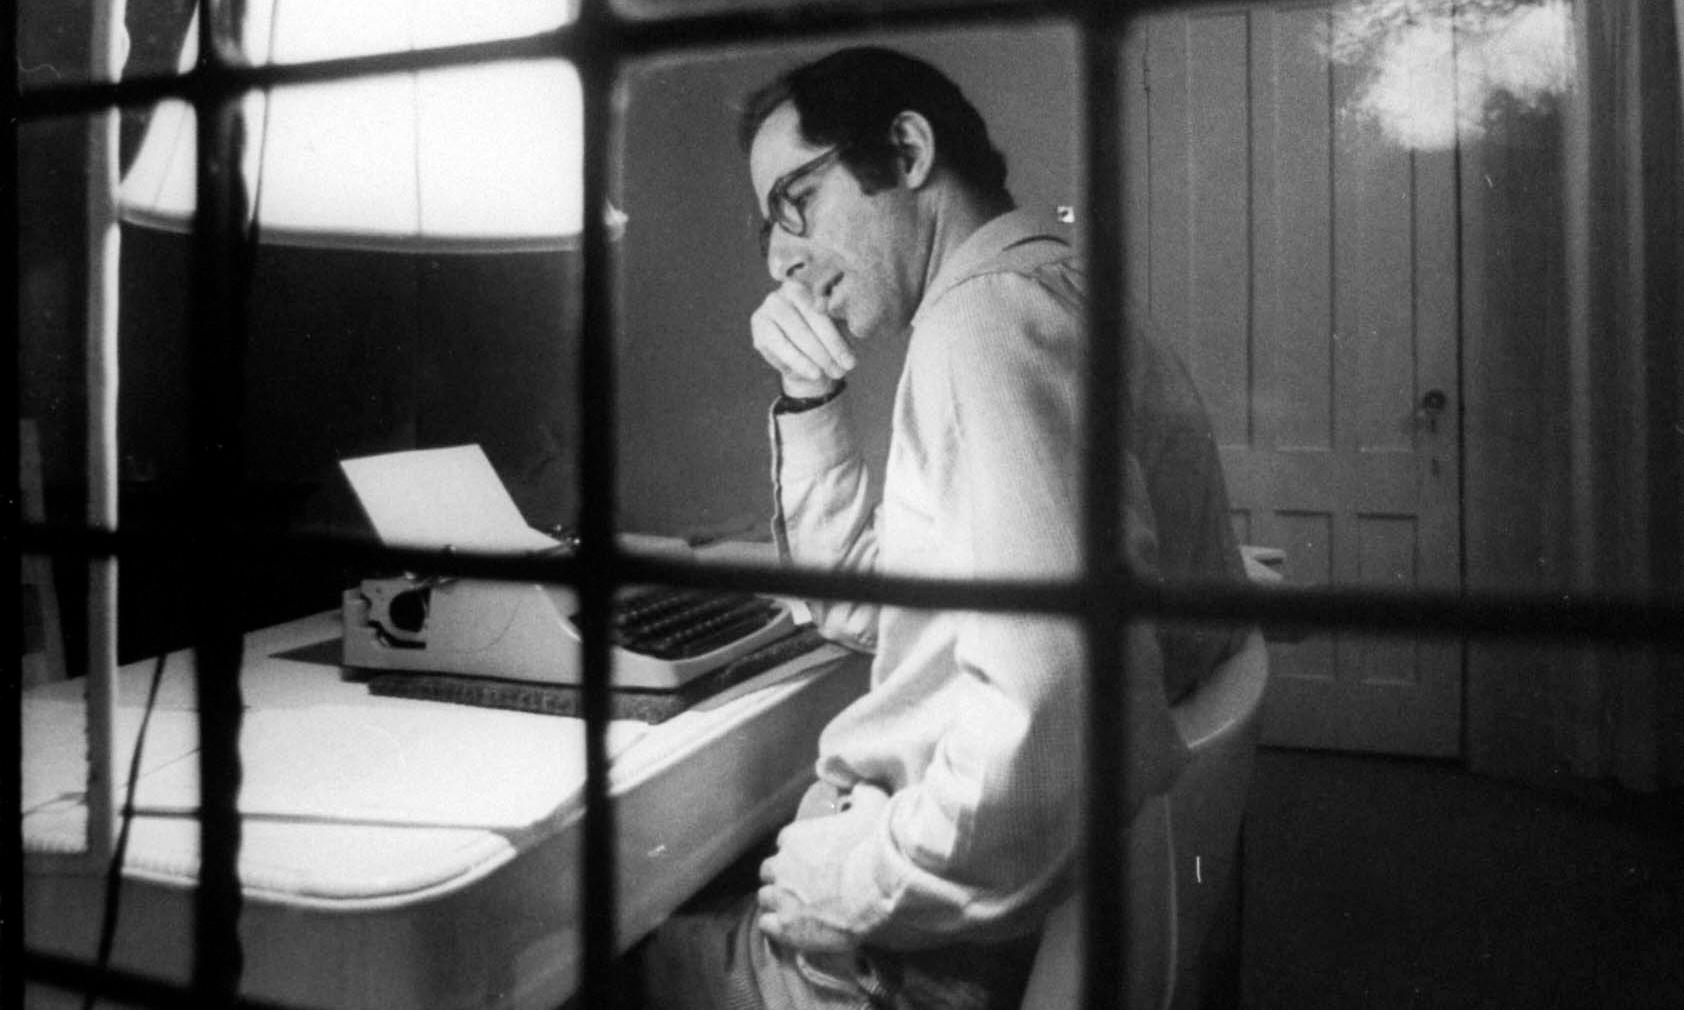 Philip Roth's apartment is on the market – but his privacy shouldn't be